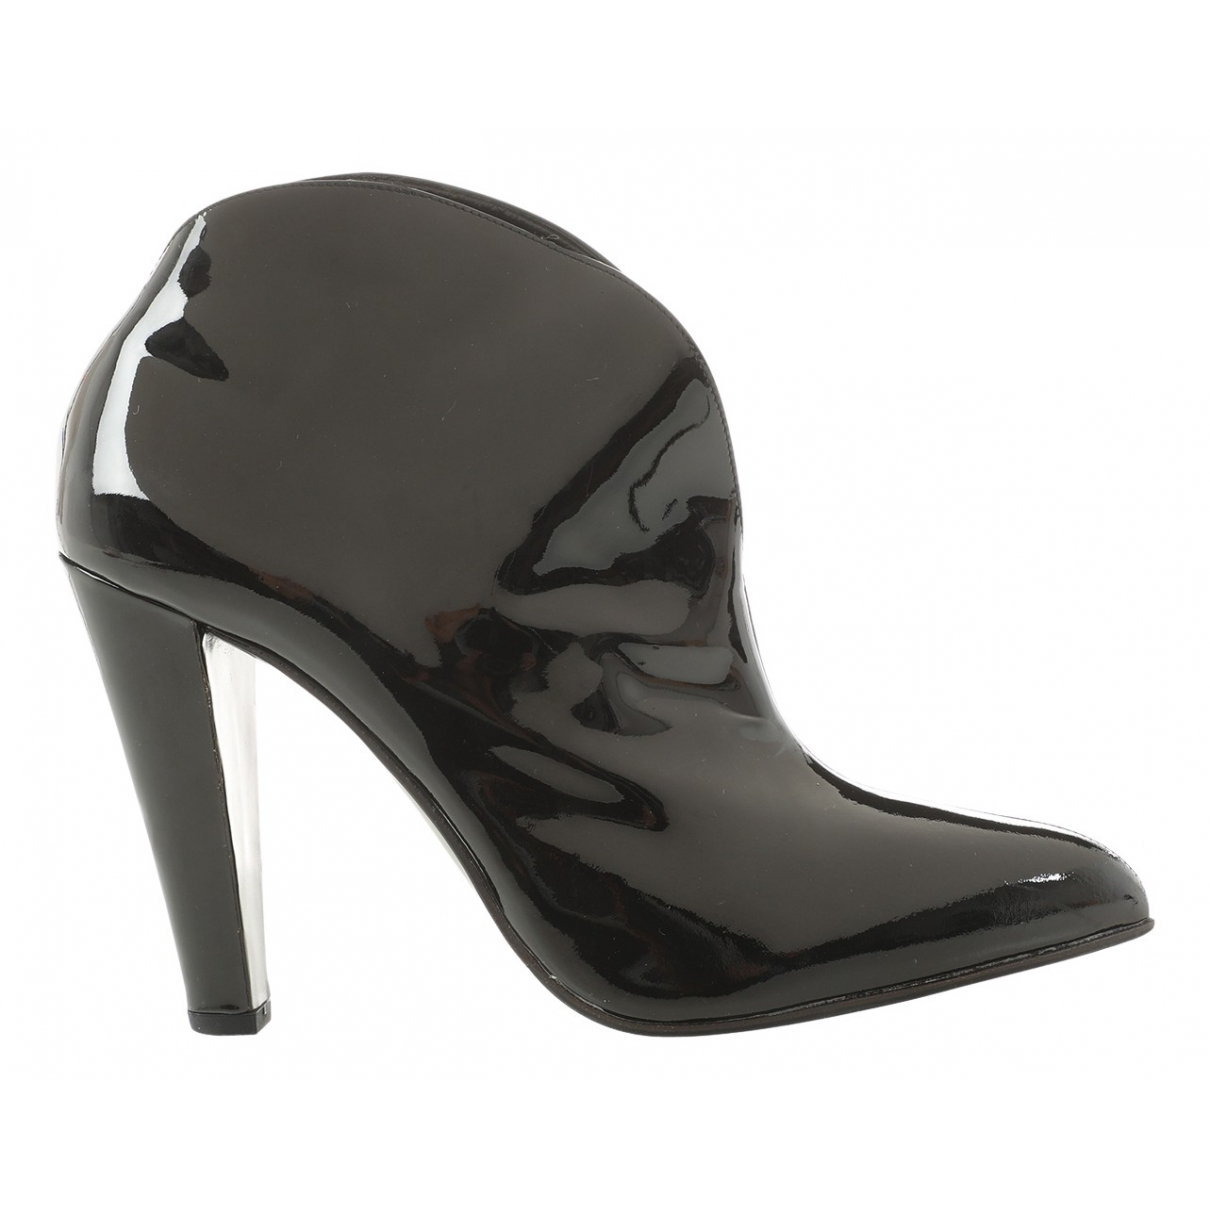 Miu Miu \N Black Patent leather Ankle boots for Women 39.5 EU